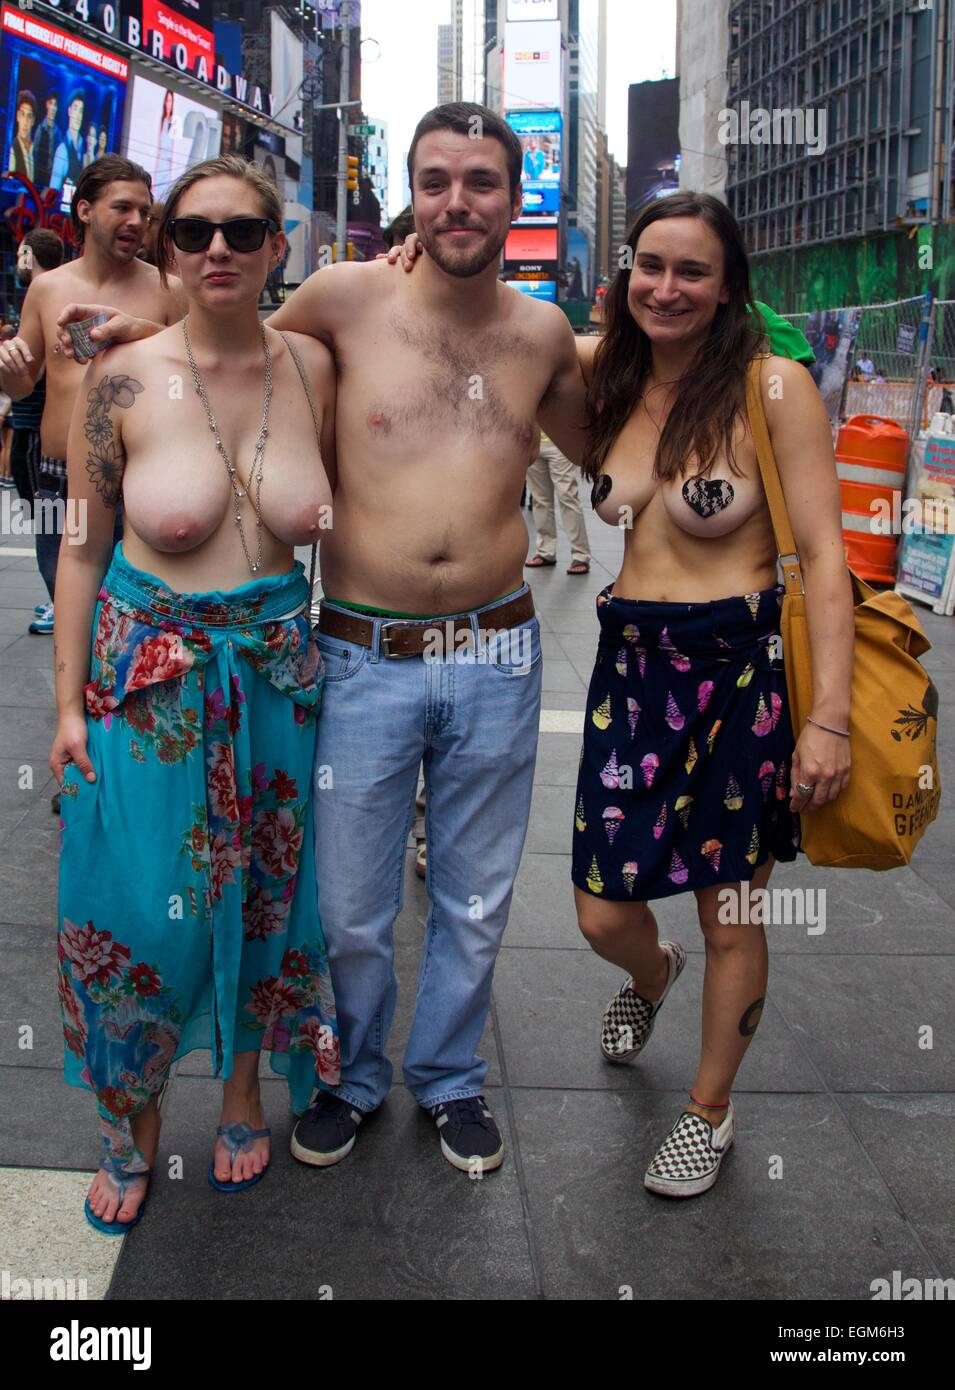 Go topless day 2014 very good